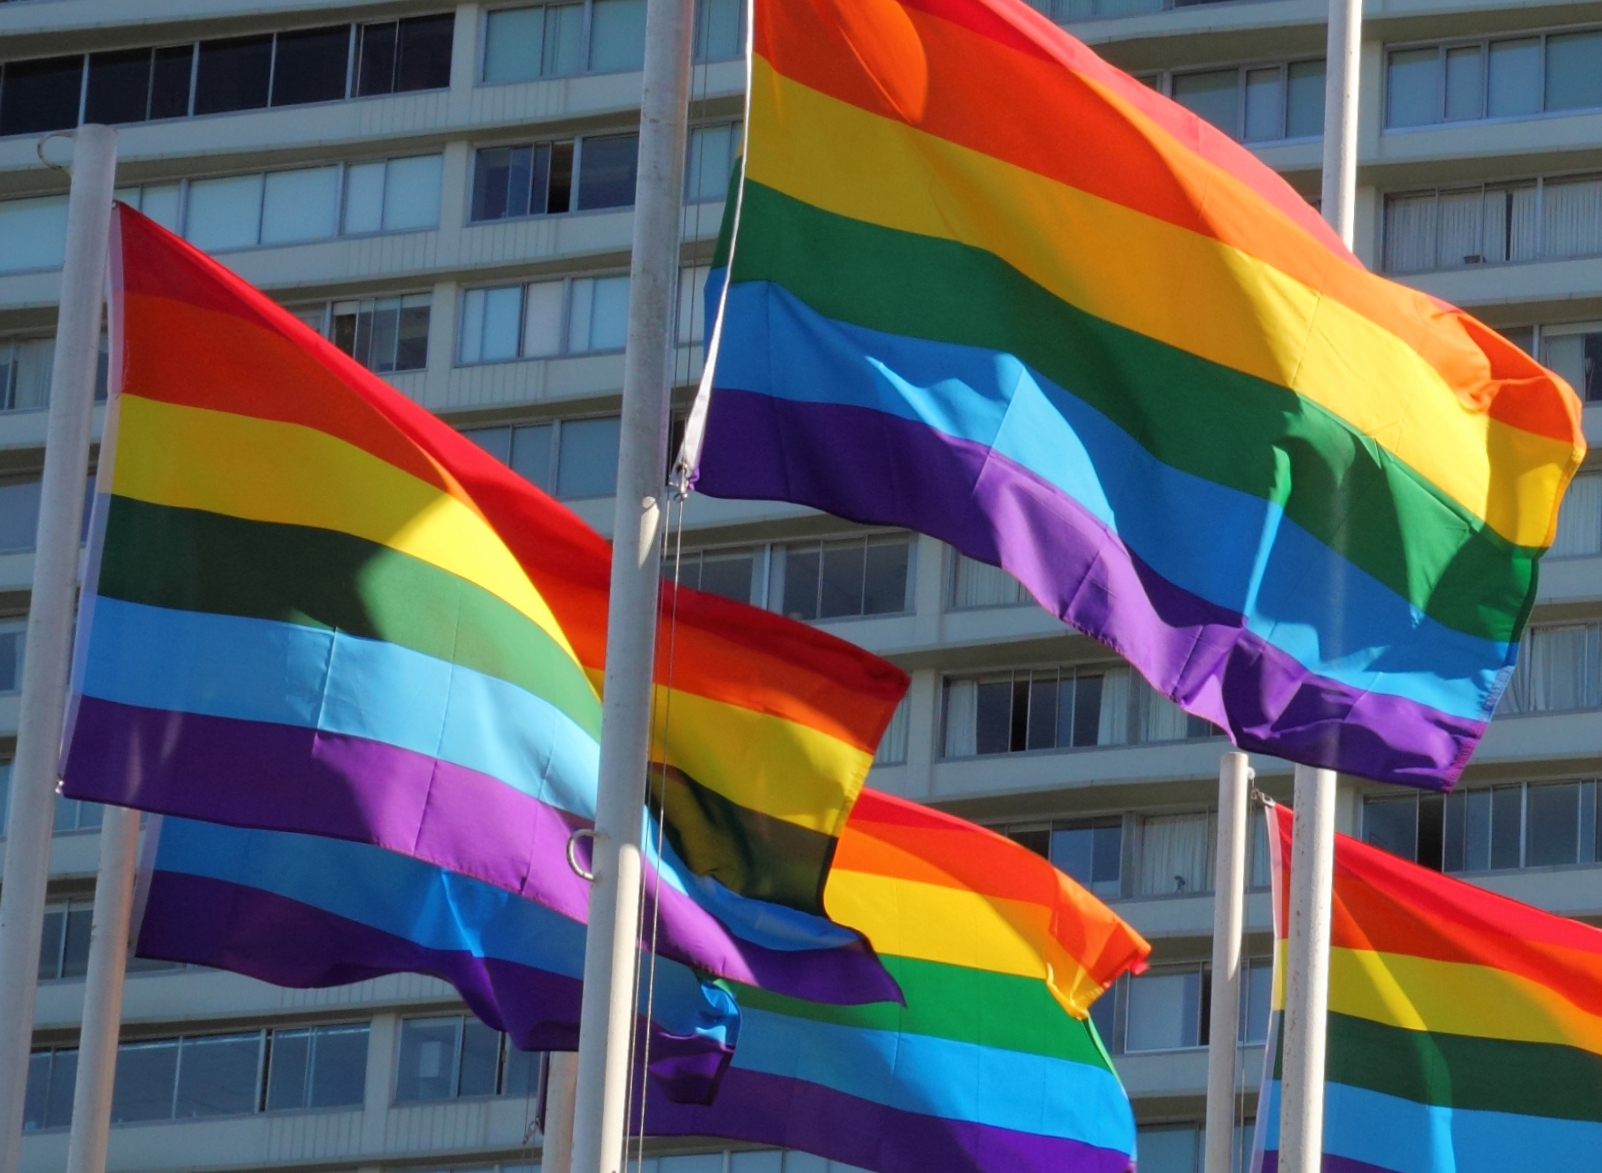 Rainbow flags in front of building